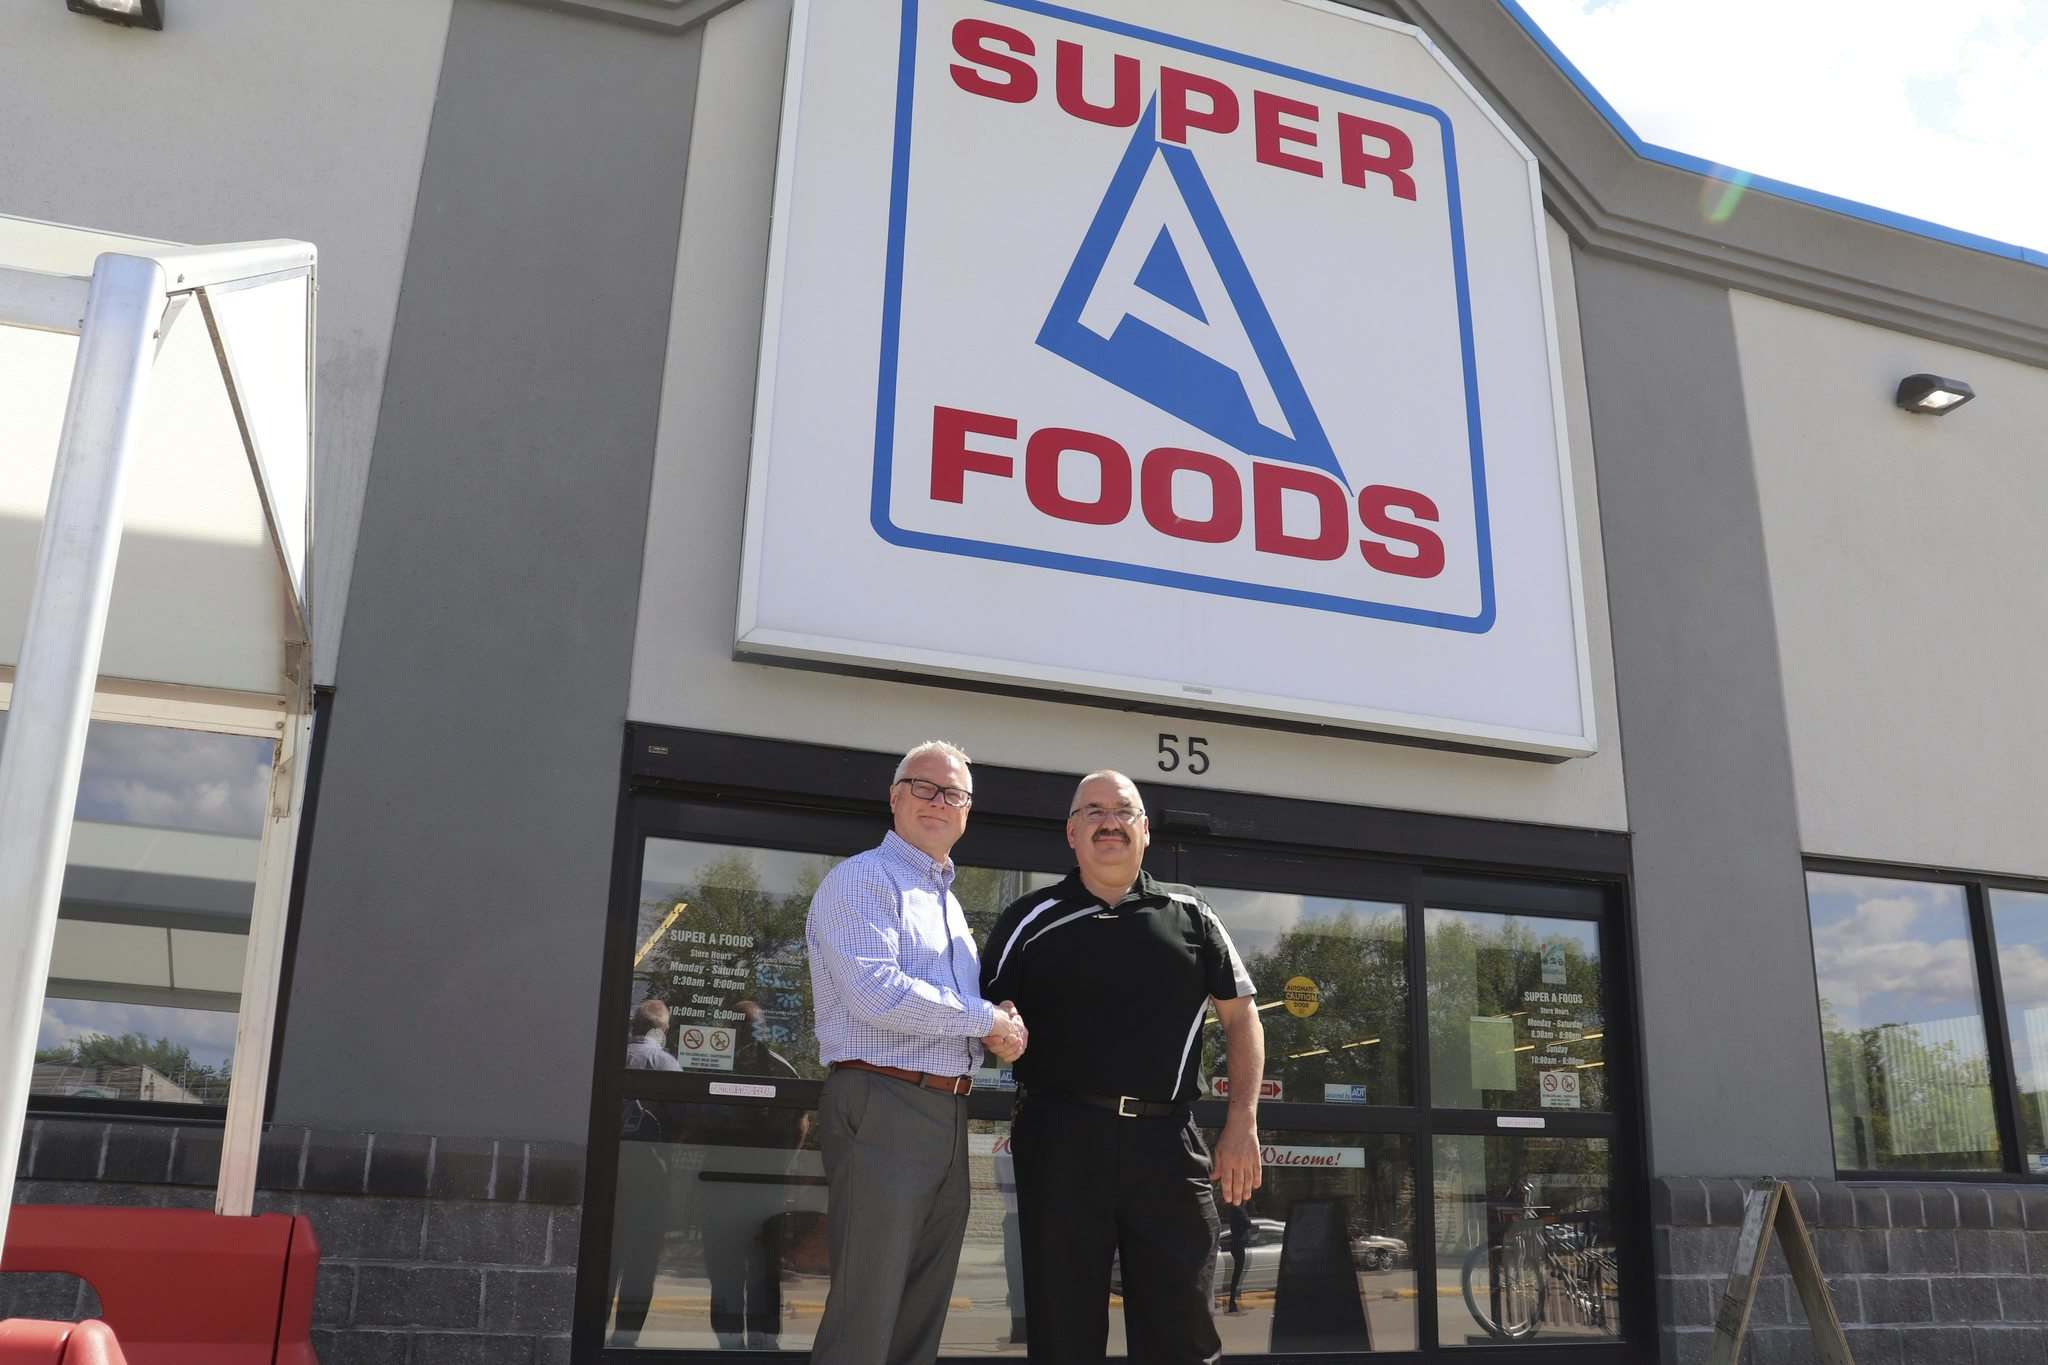 Red River Co-op will be taking over ownership and operations of the Super A Foods at 55 Centre St. in Gimli. (Supplied photo)</p>